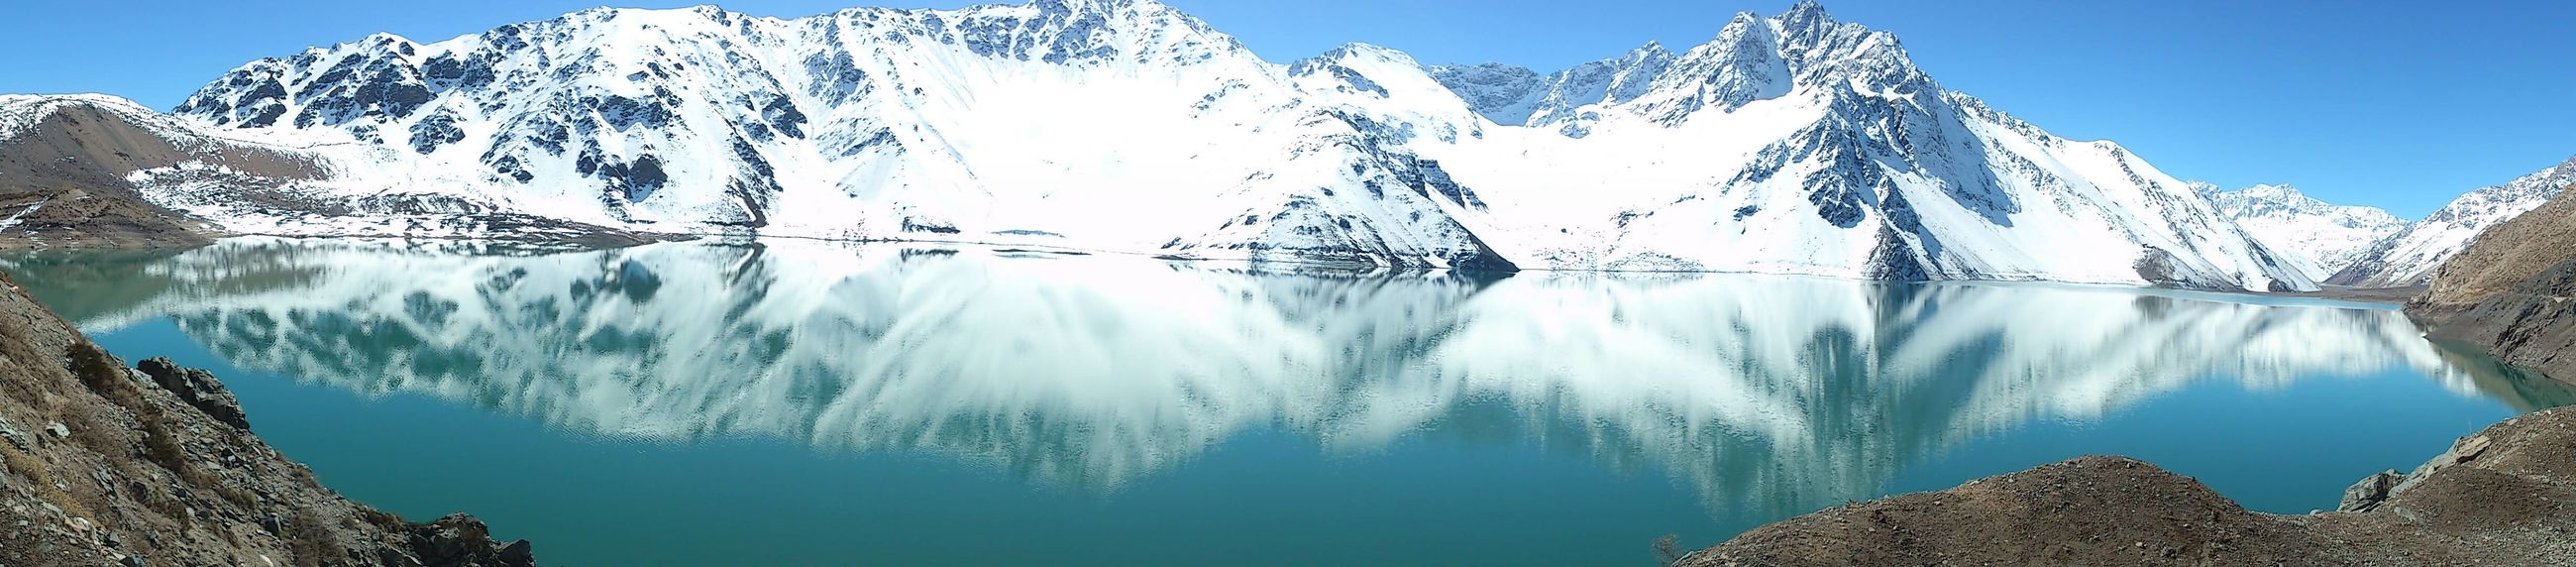 Embalse El Yeso Chile♥ Water Reflections Montains